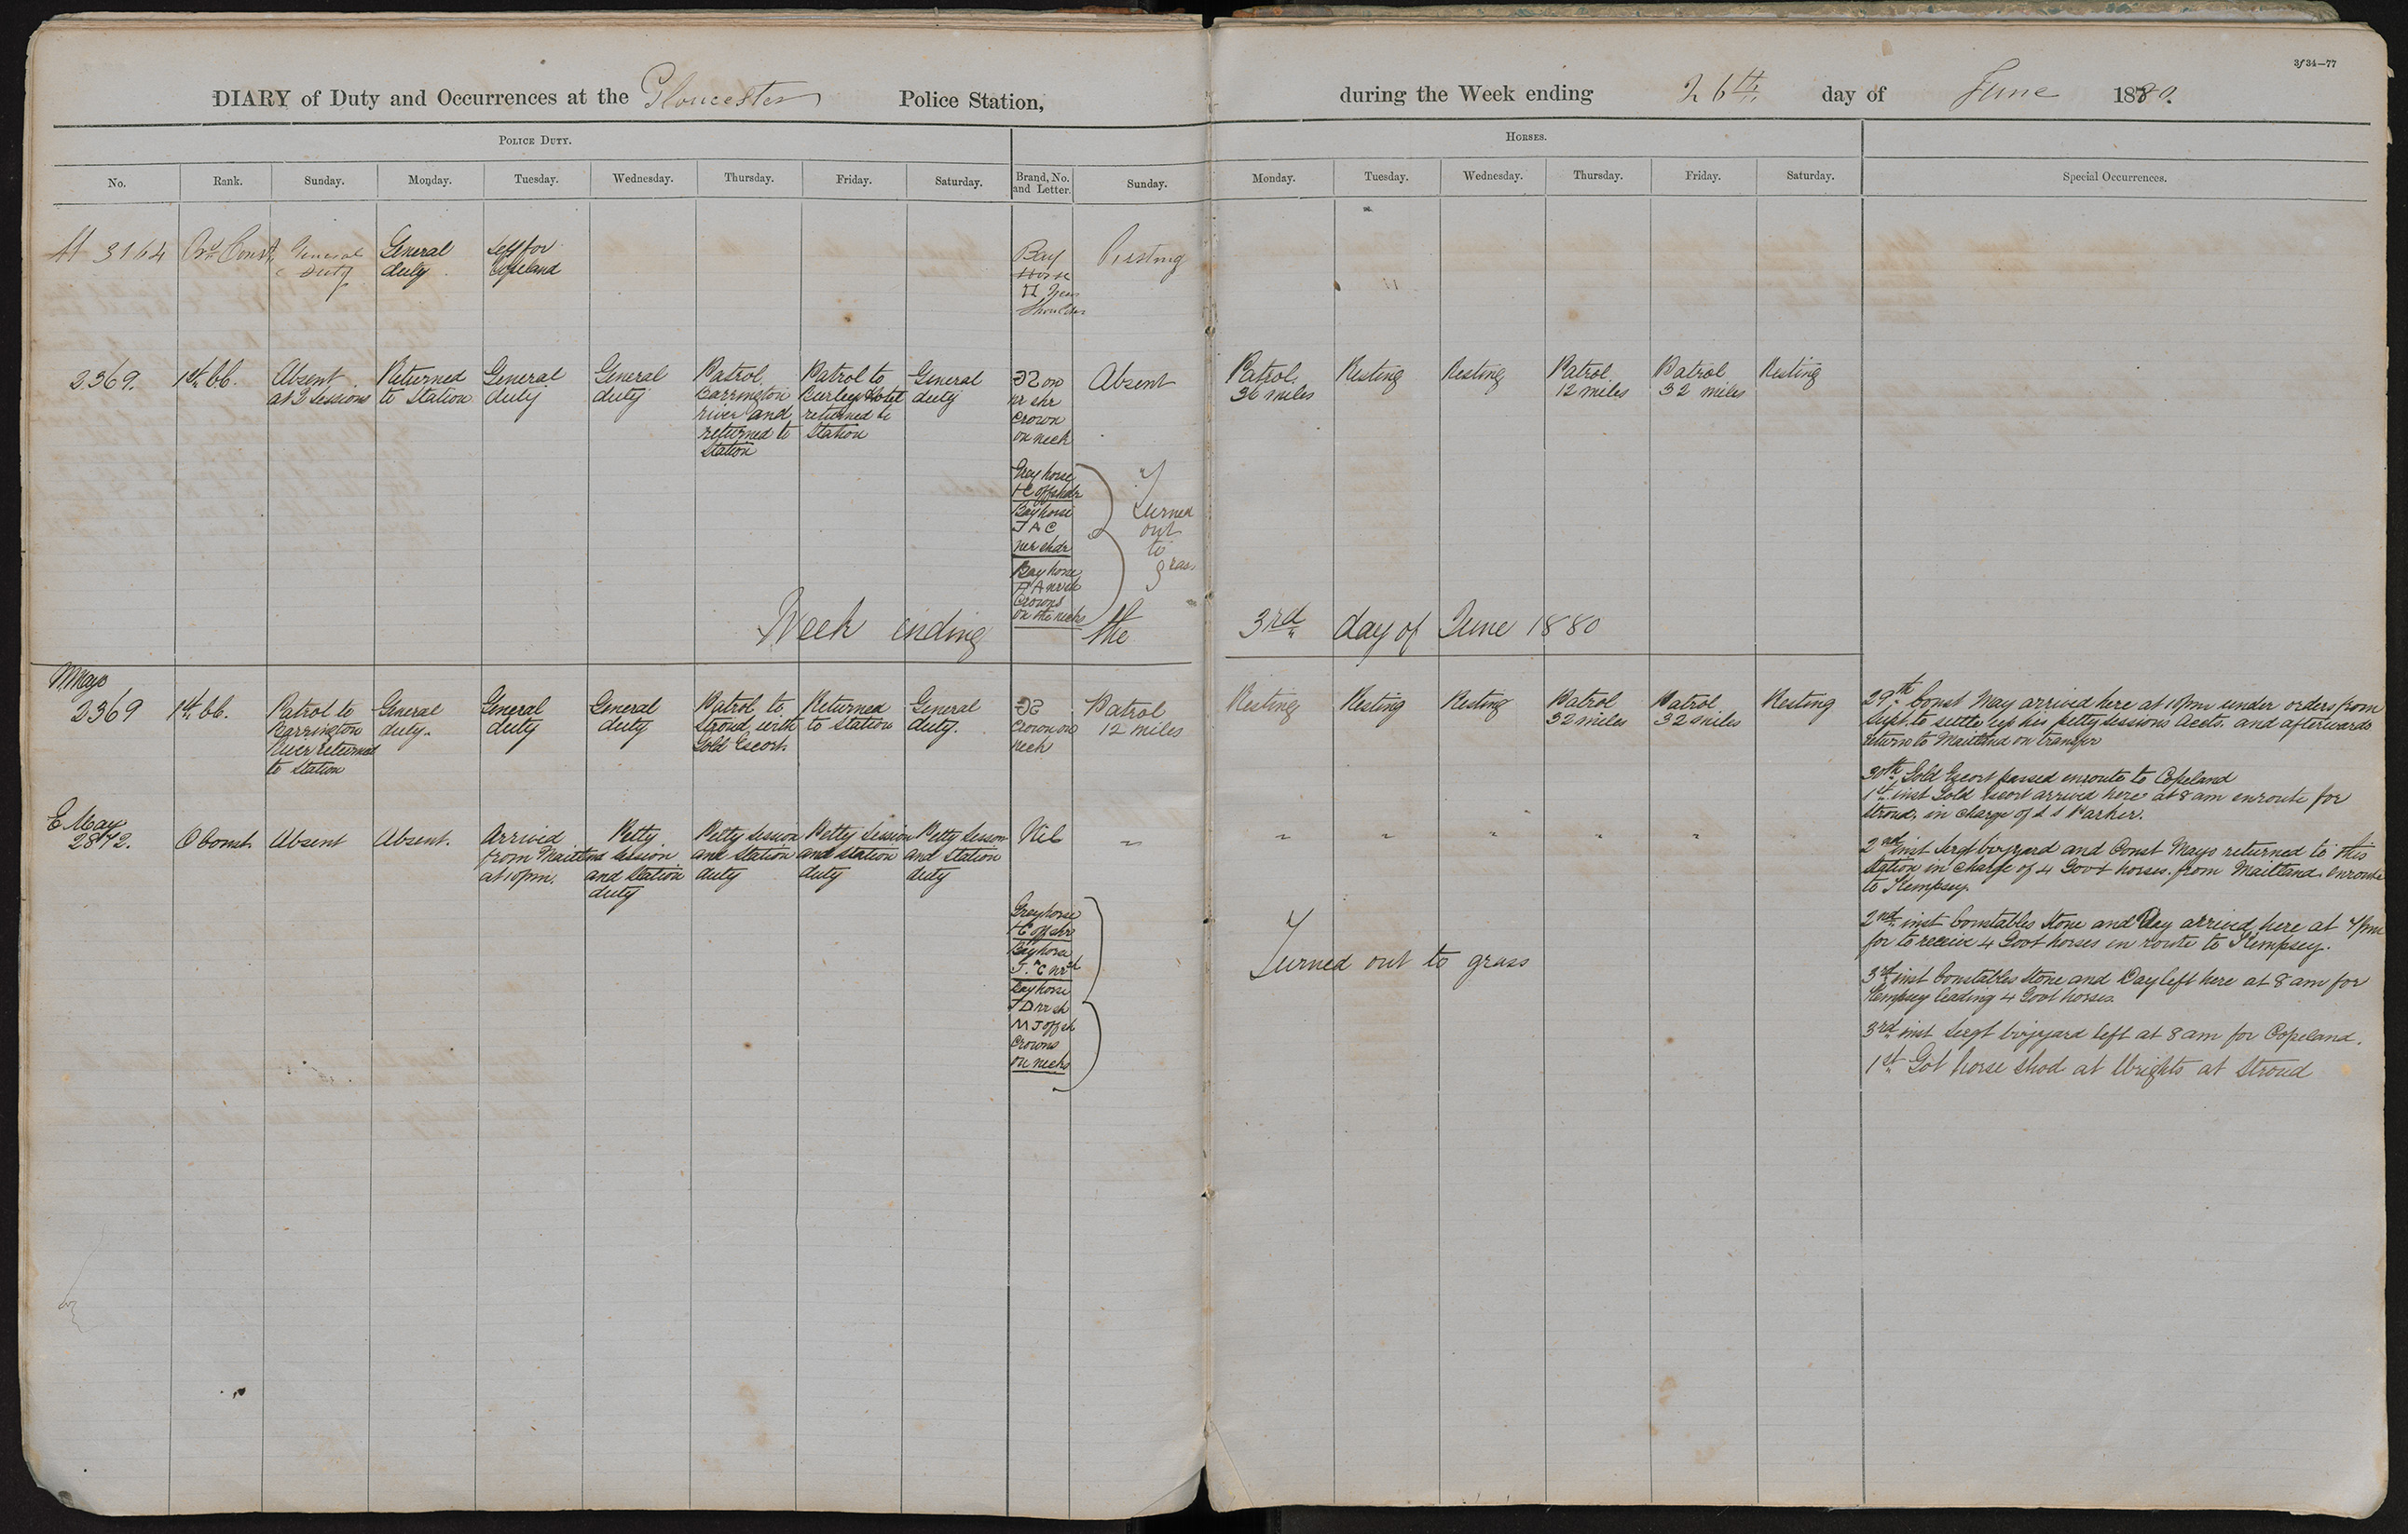 Diary of duty and occurrences at the Gloucester Police Station during the week ending the 26th day of June 1880